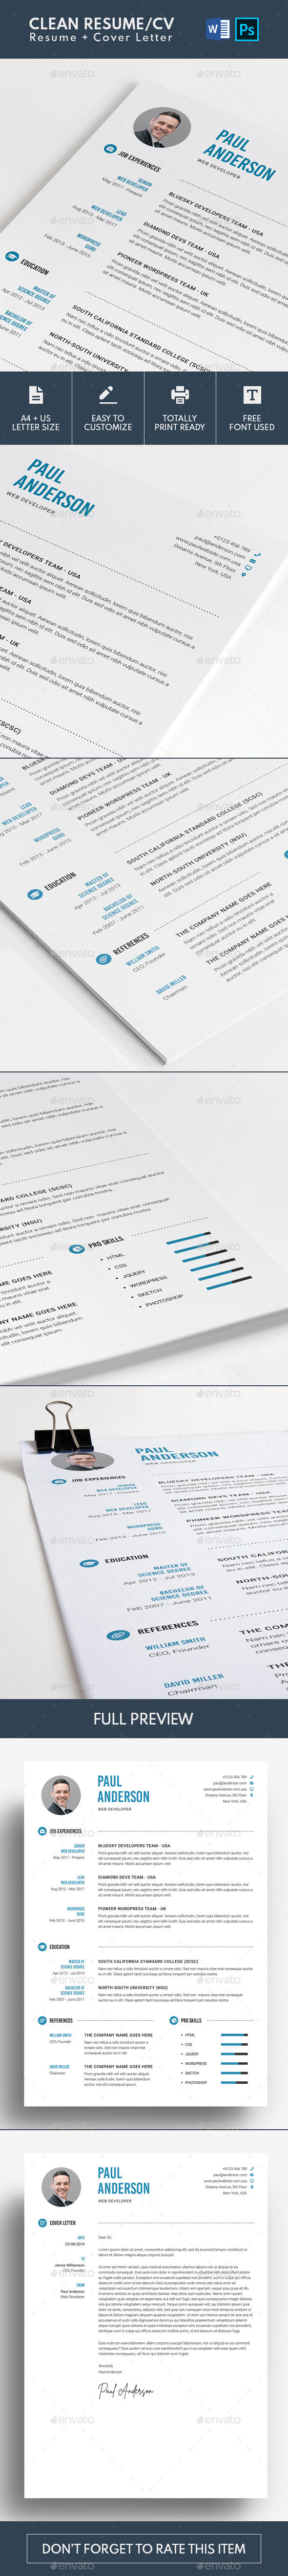 PSD Graphics, Designs & Templates from GraphicRiver